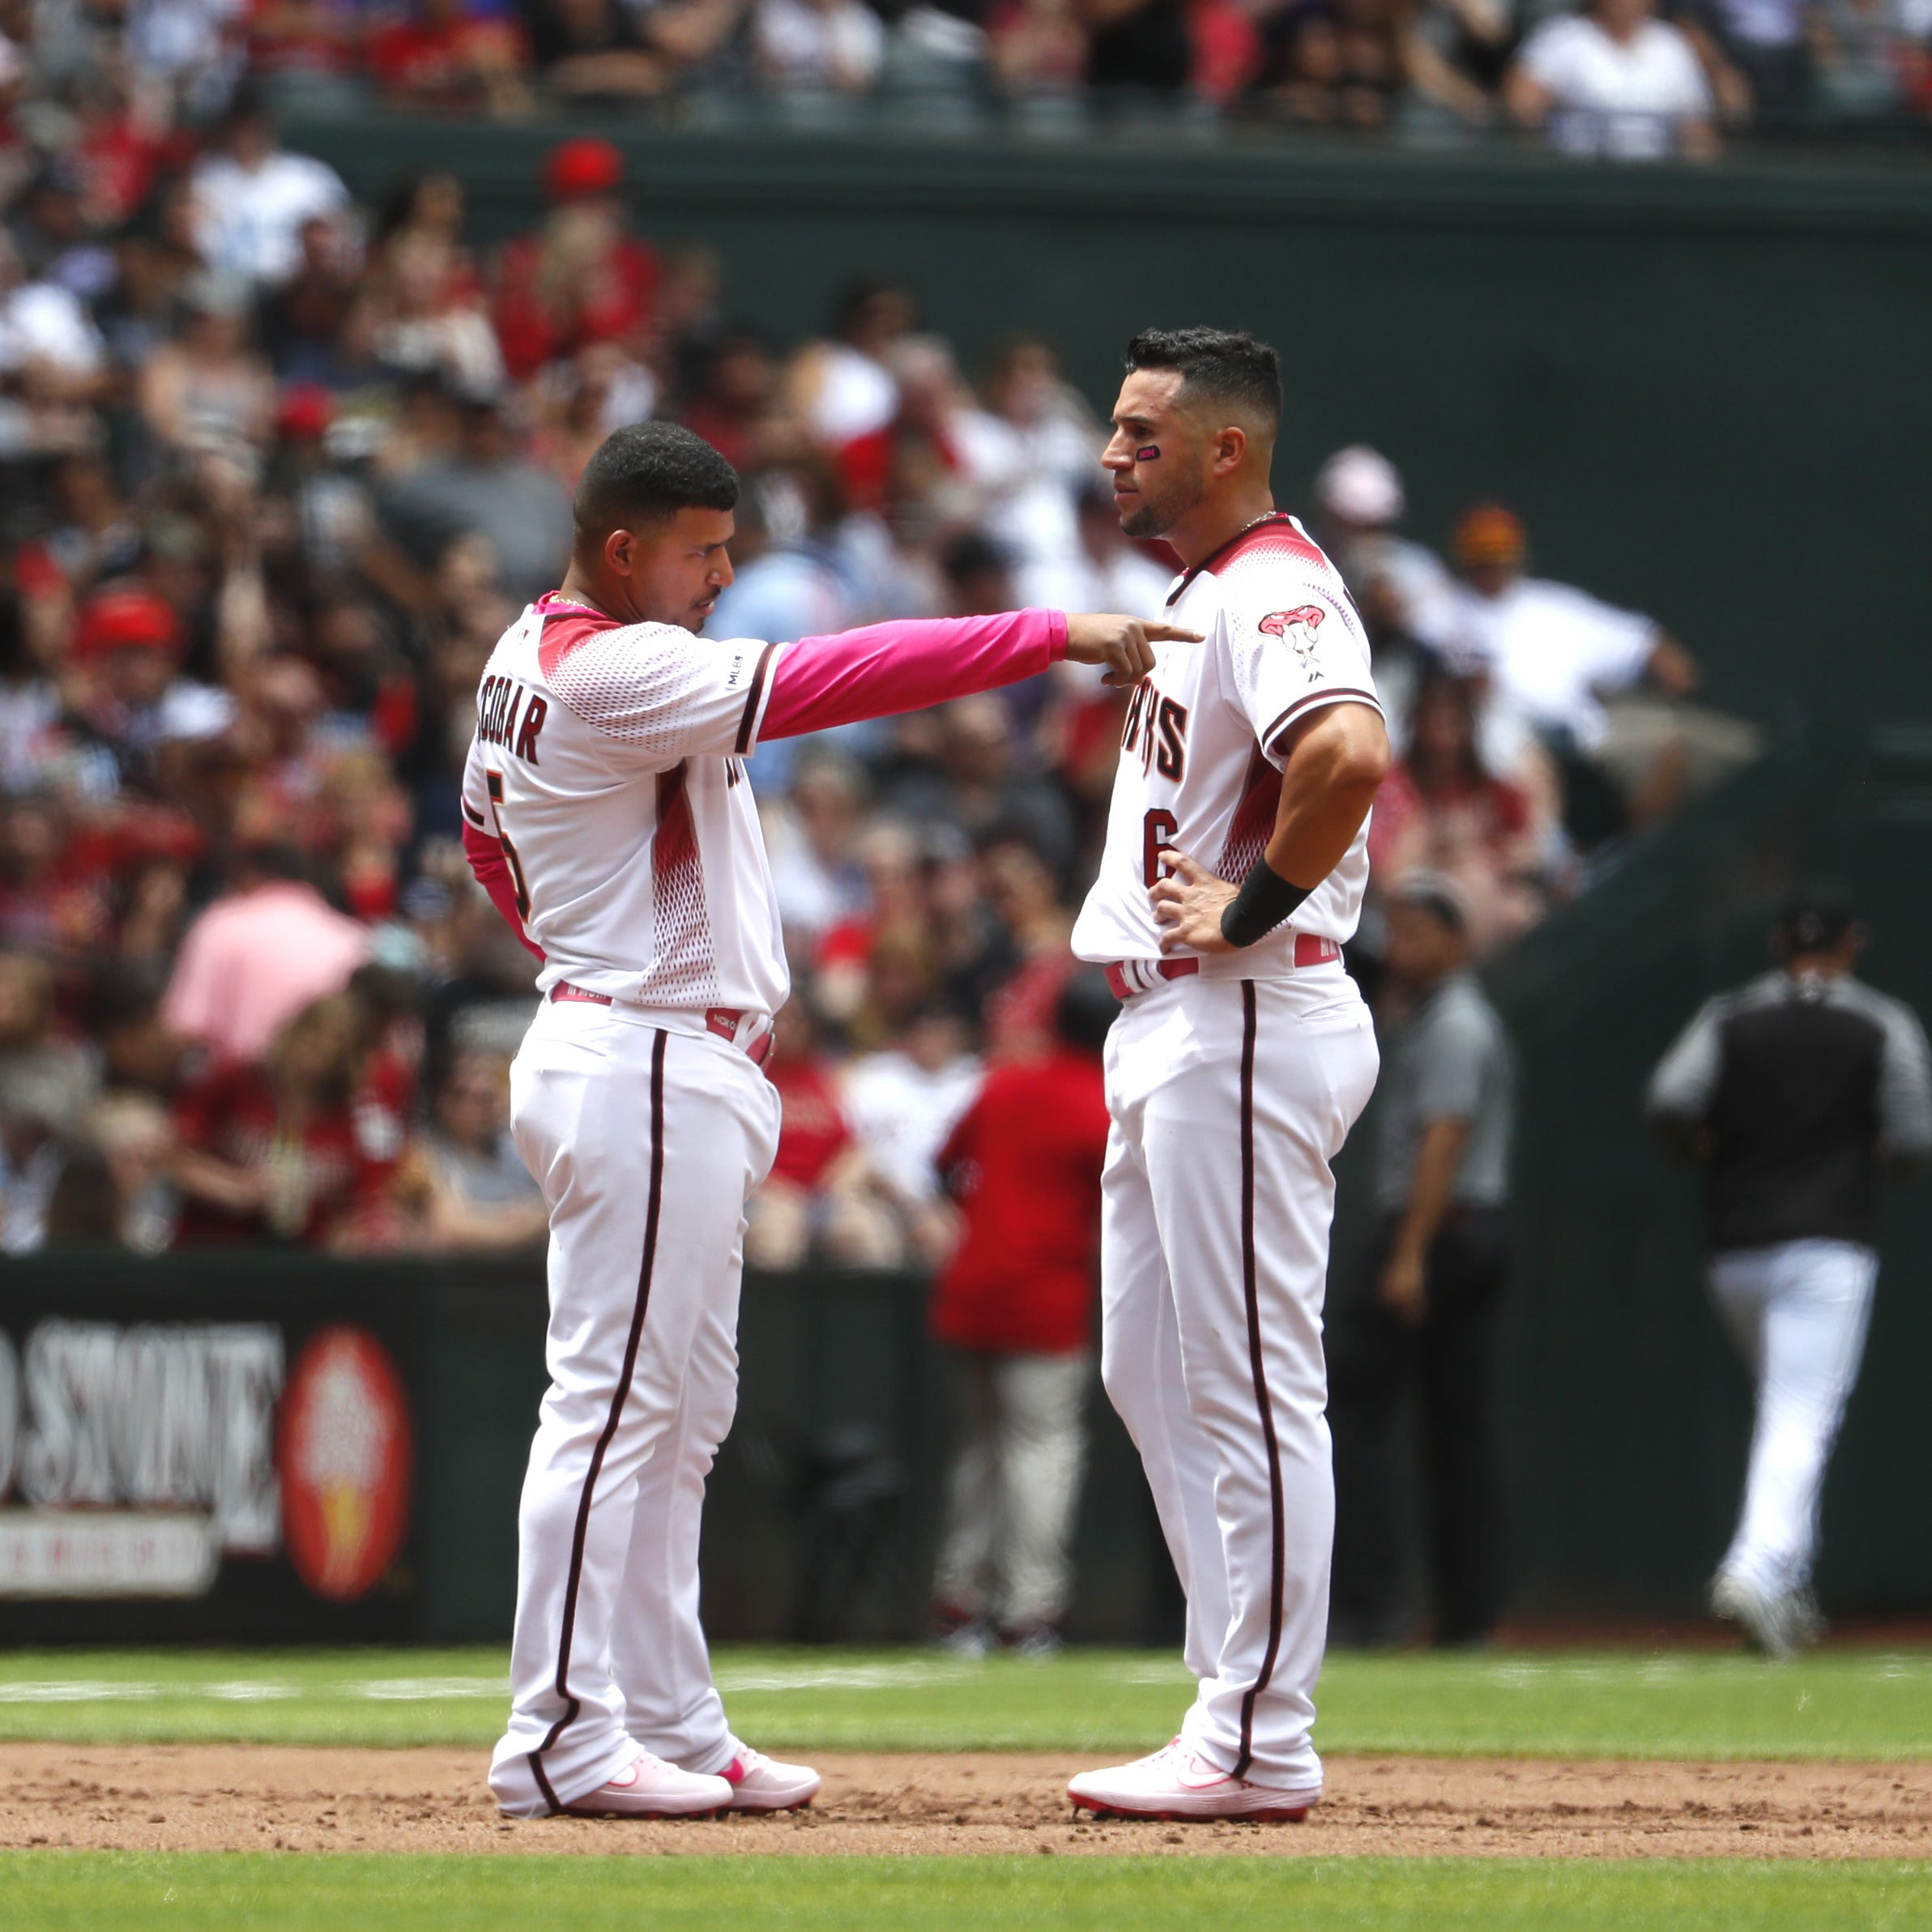 'All we need is that hit': Diamondbacks' lack of run production against Braves has pros, cons